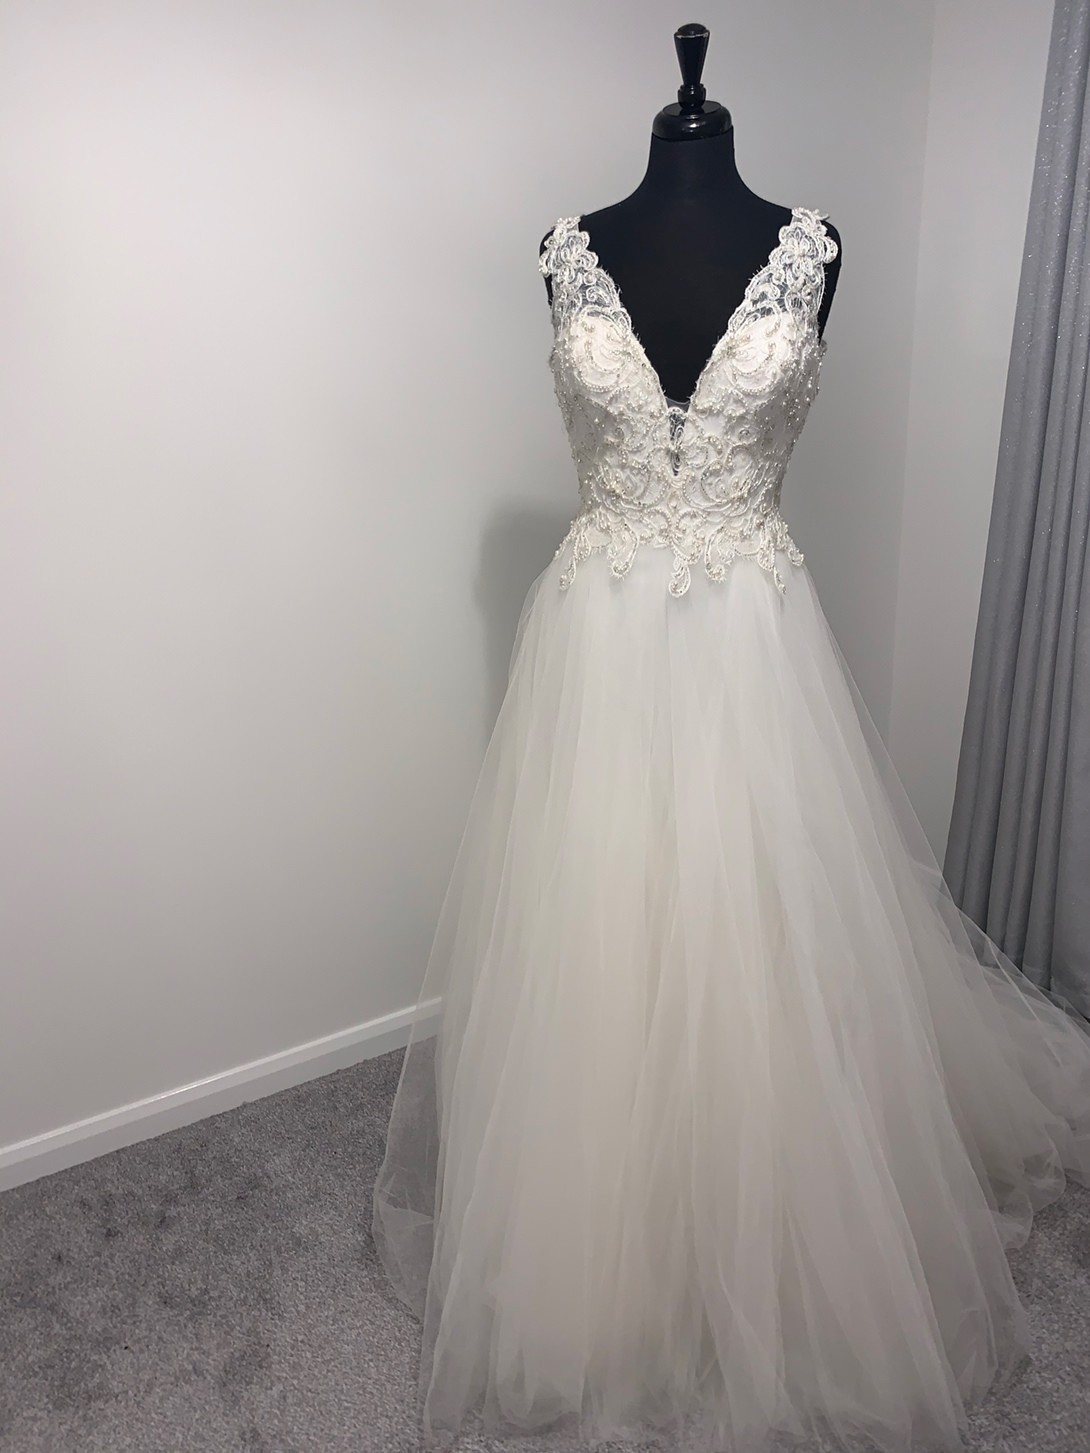 Enzoani Blue wedding dress (Josetta) image 1